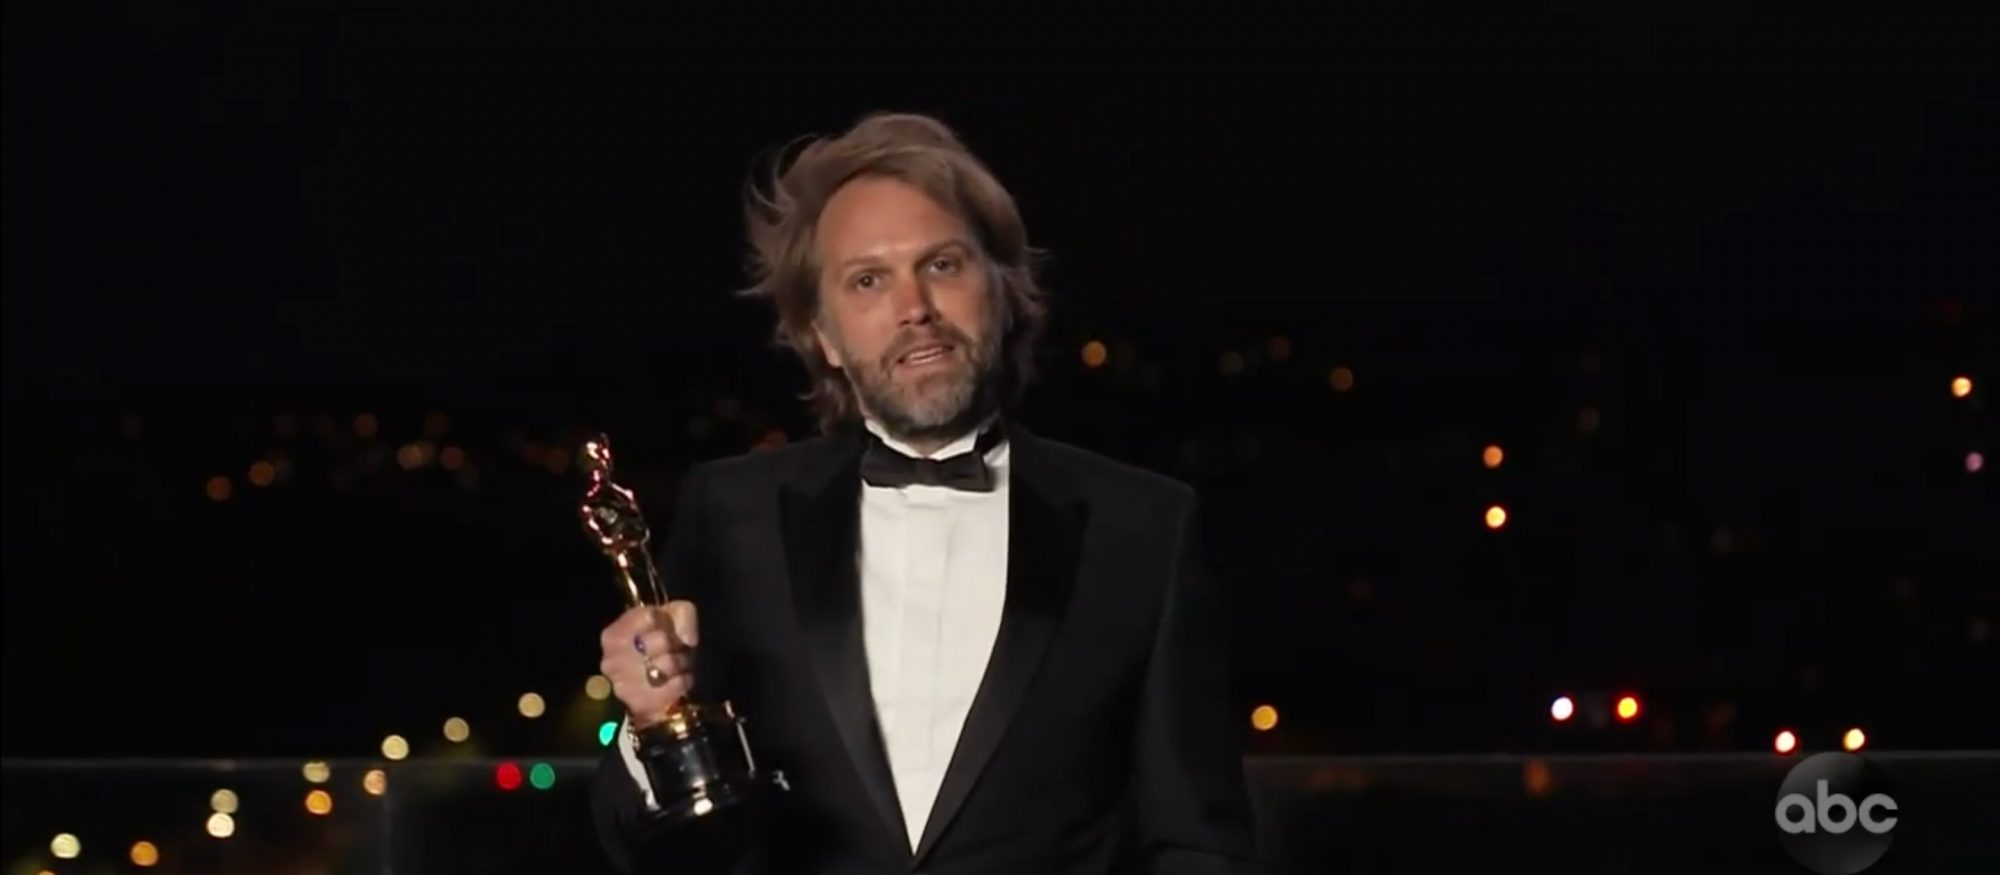 The Father's Florian Zeller Says He 'Wrote the Script' for Anthony Hopkins as He Wins Oscar